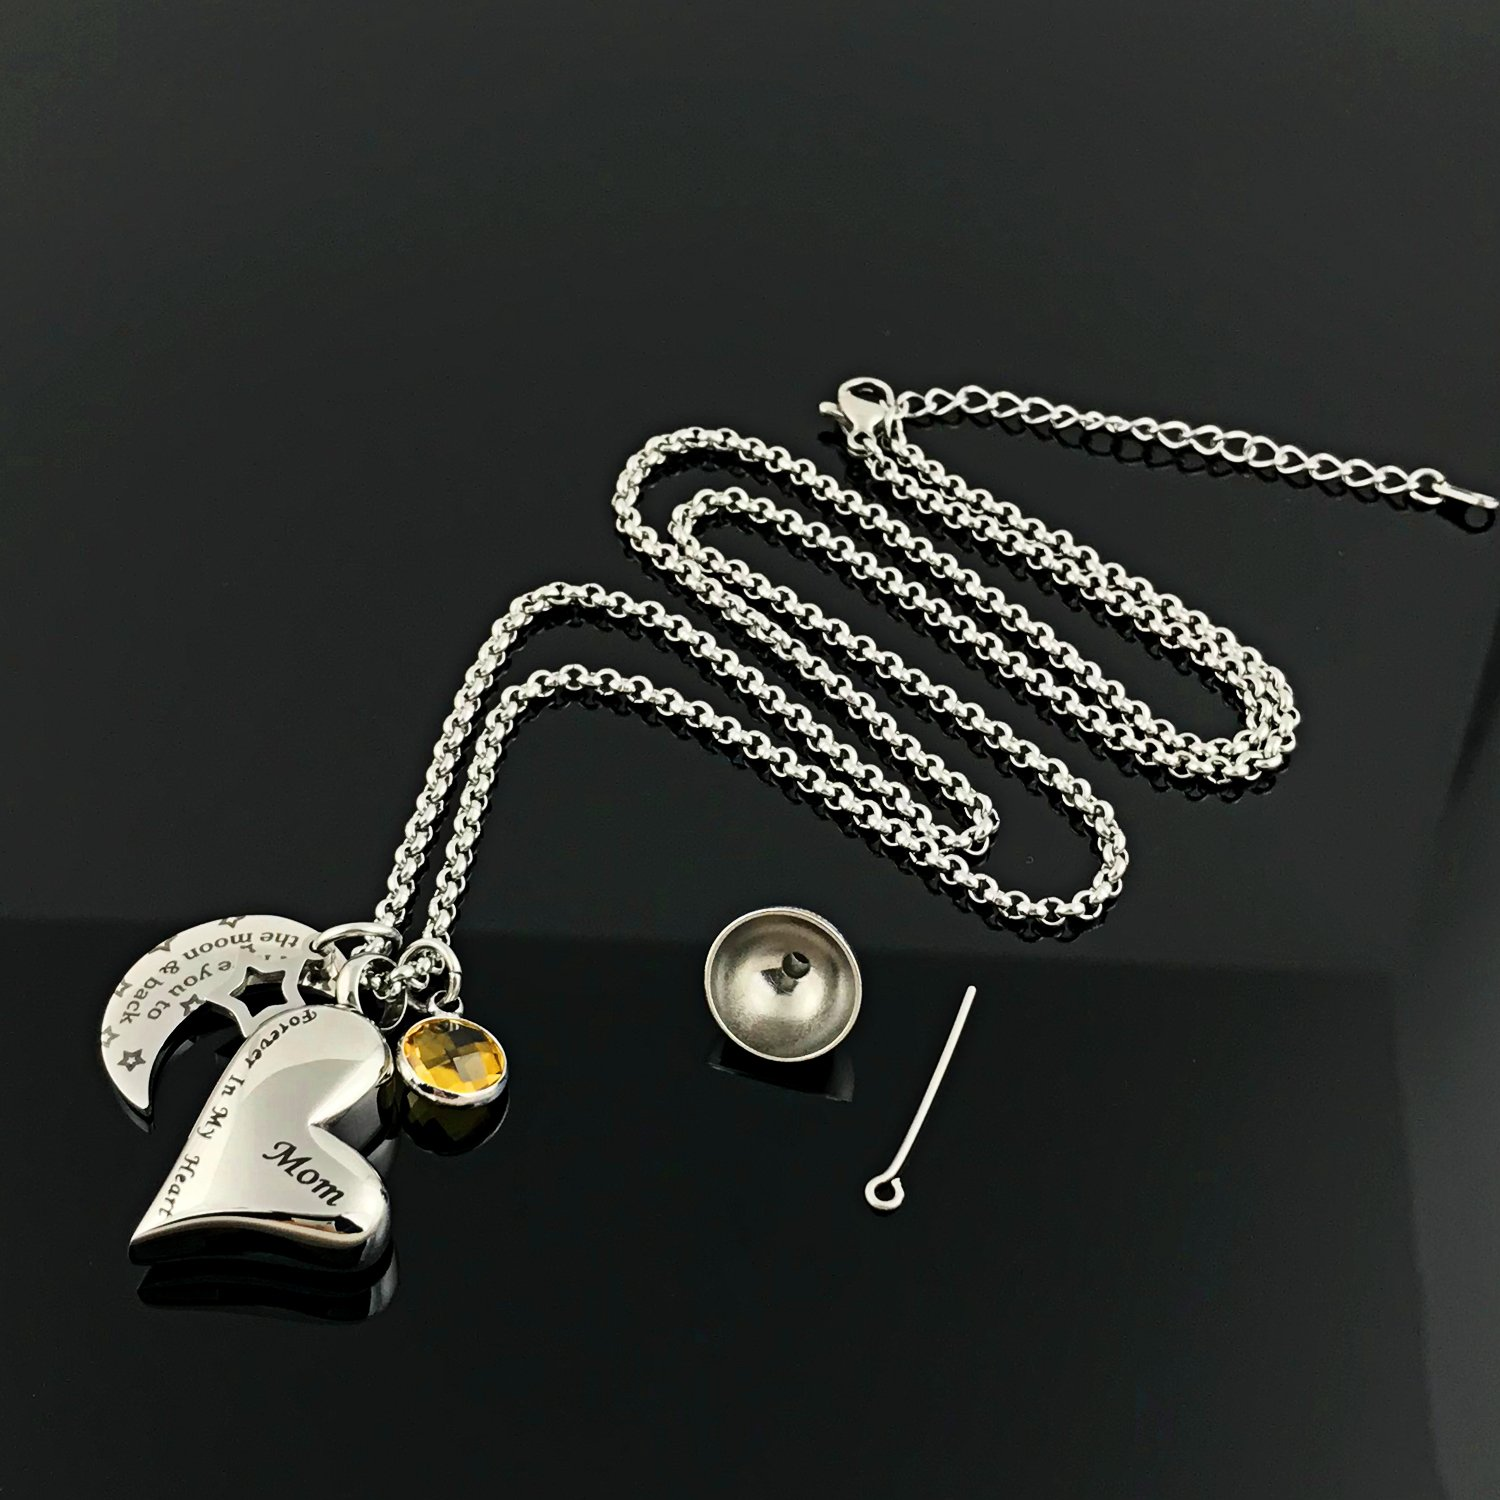 YOUFENG Urn Necklaces for Ashes I Love You to The Moon and Back for Mom Cremation Urn Locket Birthstone Jewelry